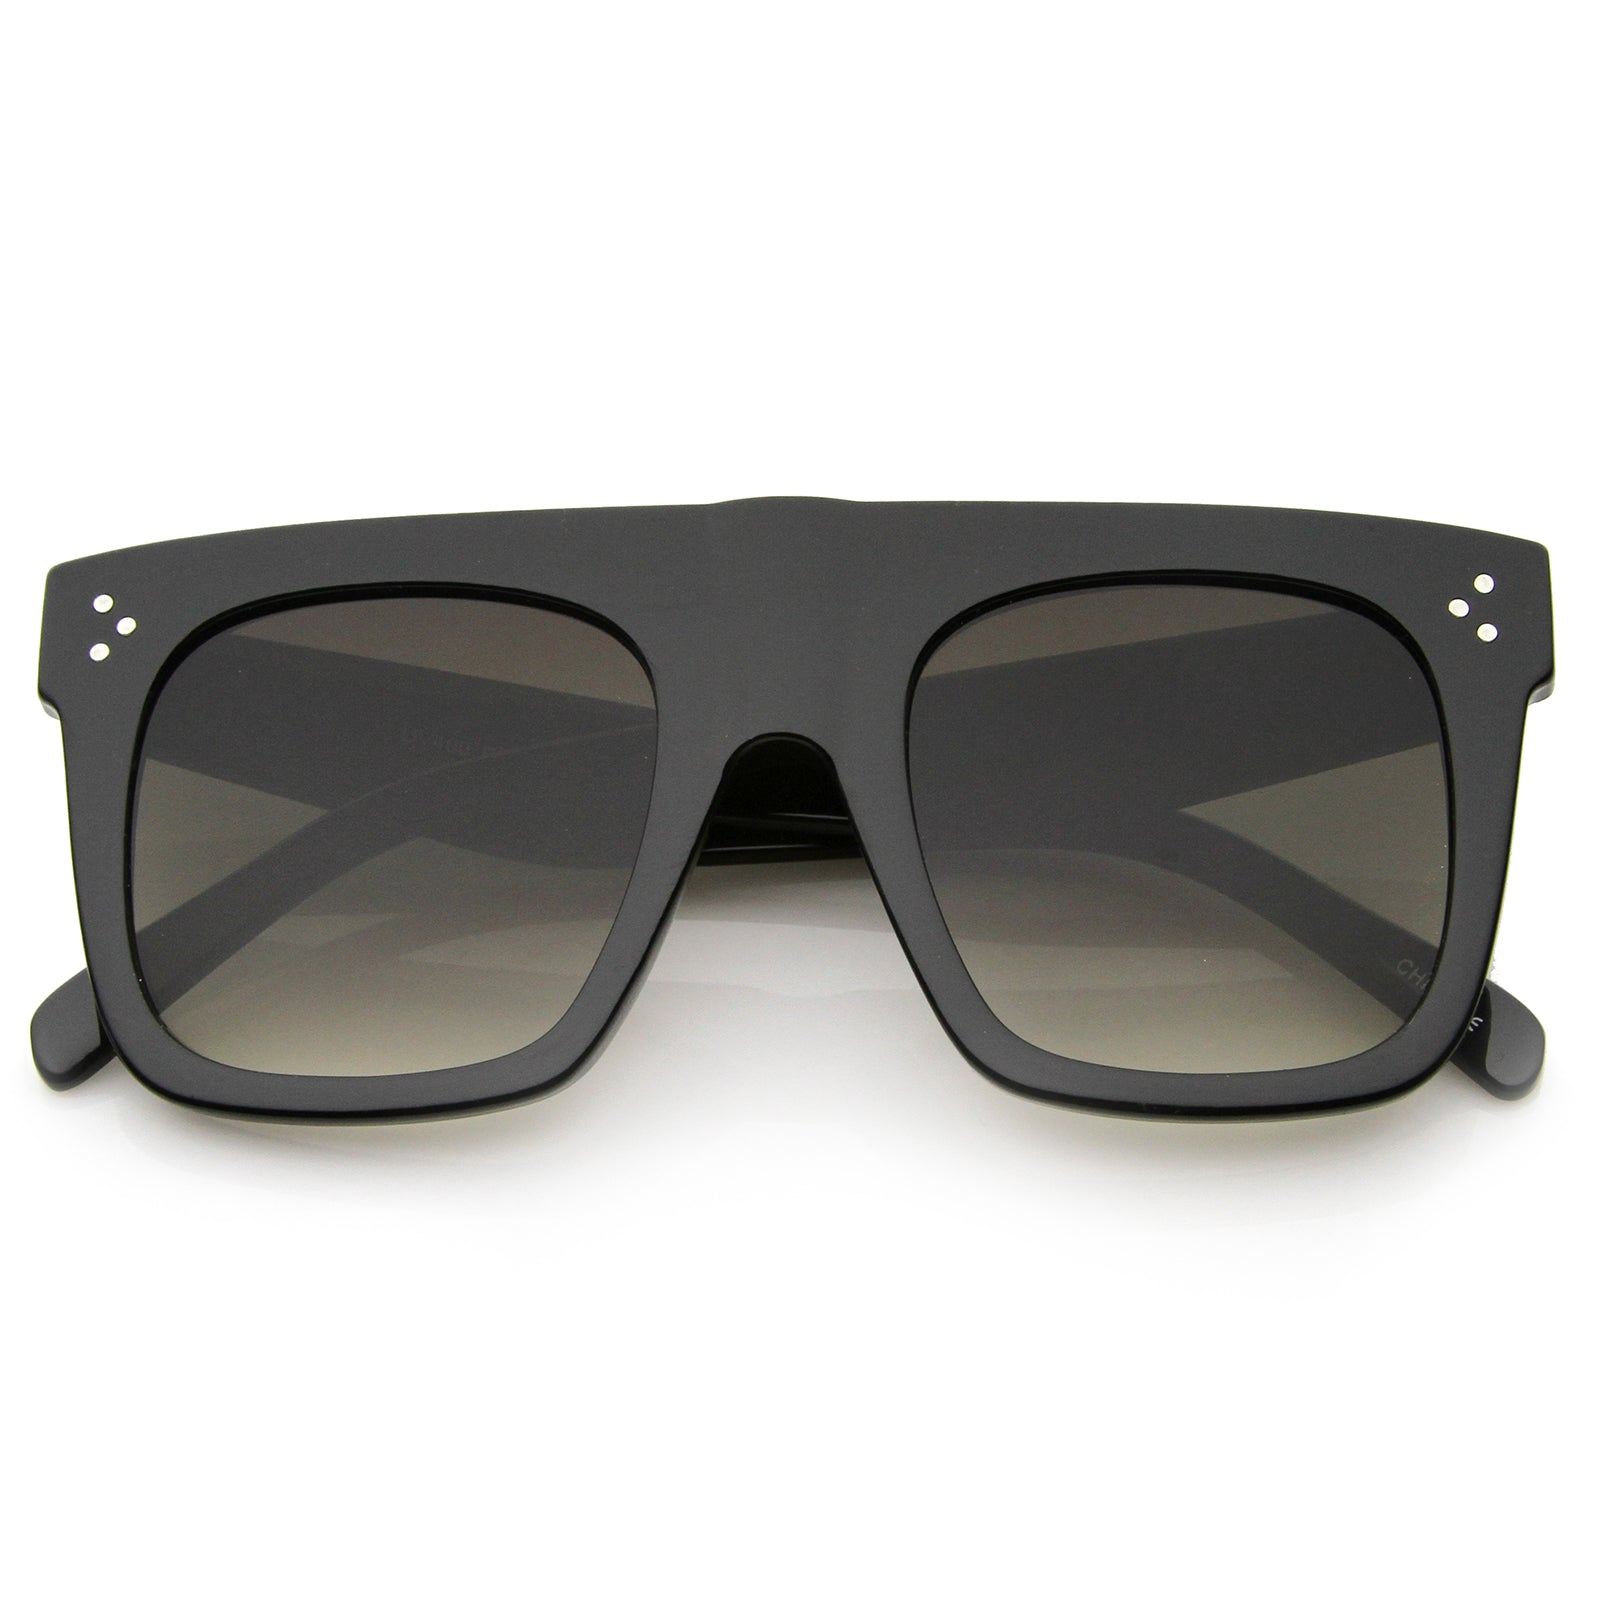 Modern Fashion Bold Flat Top Square Horn Rimmed Sunglasses 50mm - sunglass.la - 9